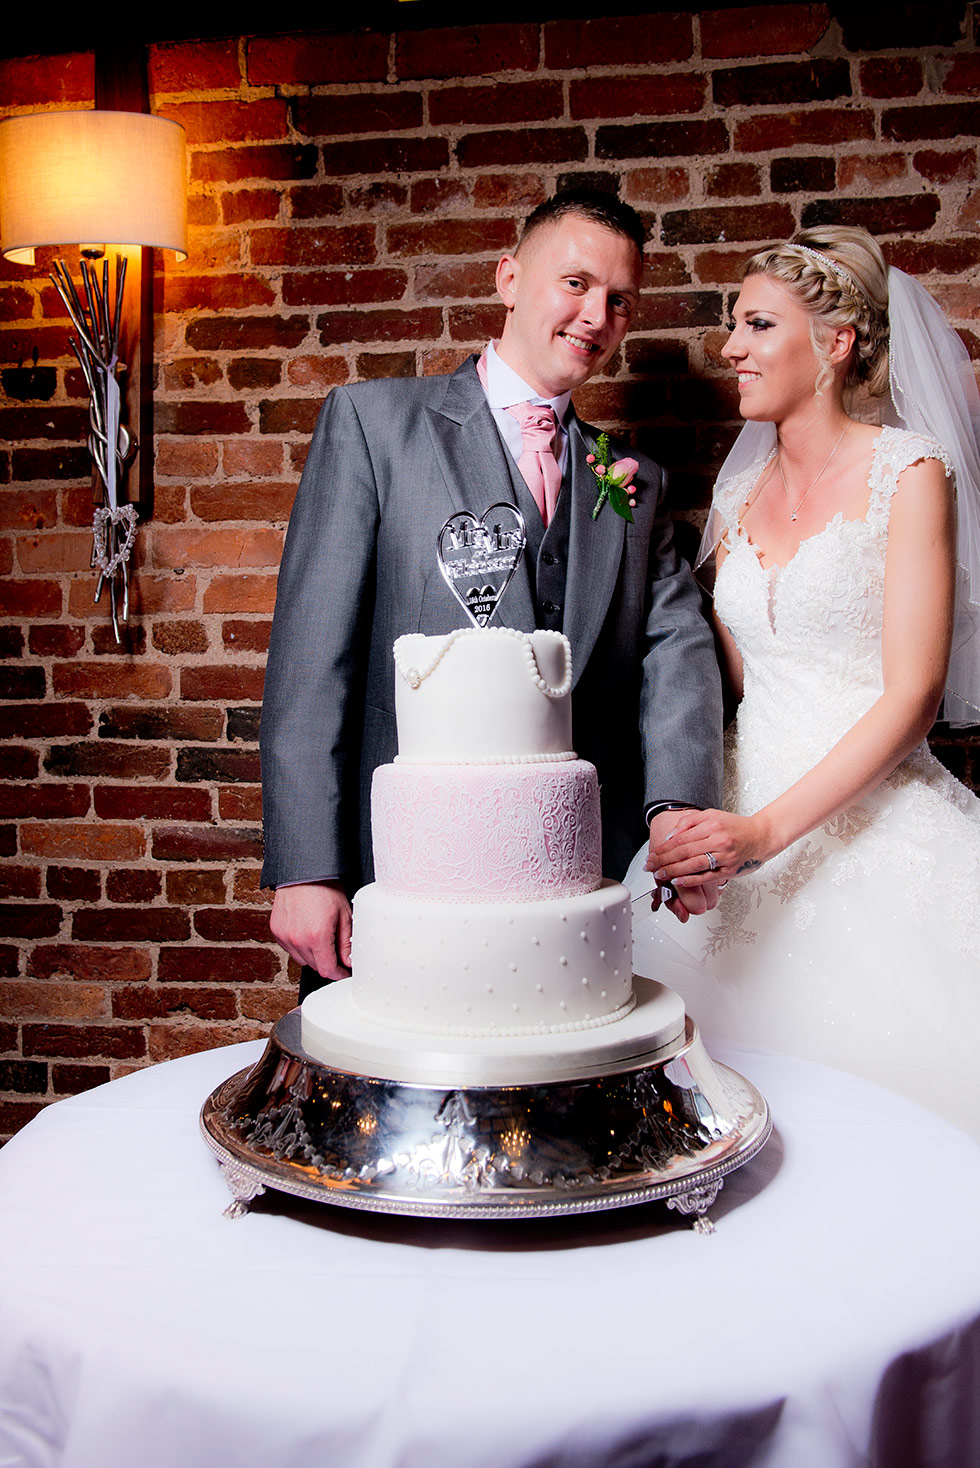 derbyshire-wedding-dusky-pink-and-silver-wedding-palette-autumn-wedding-matt-selby-photography-42